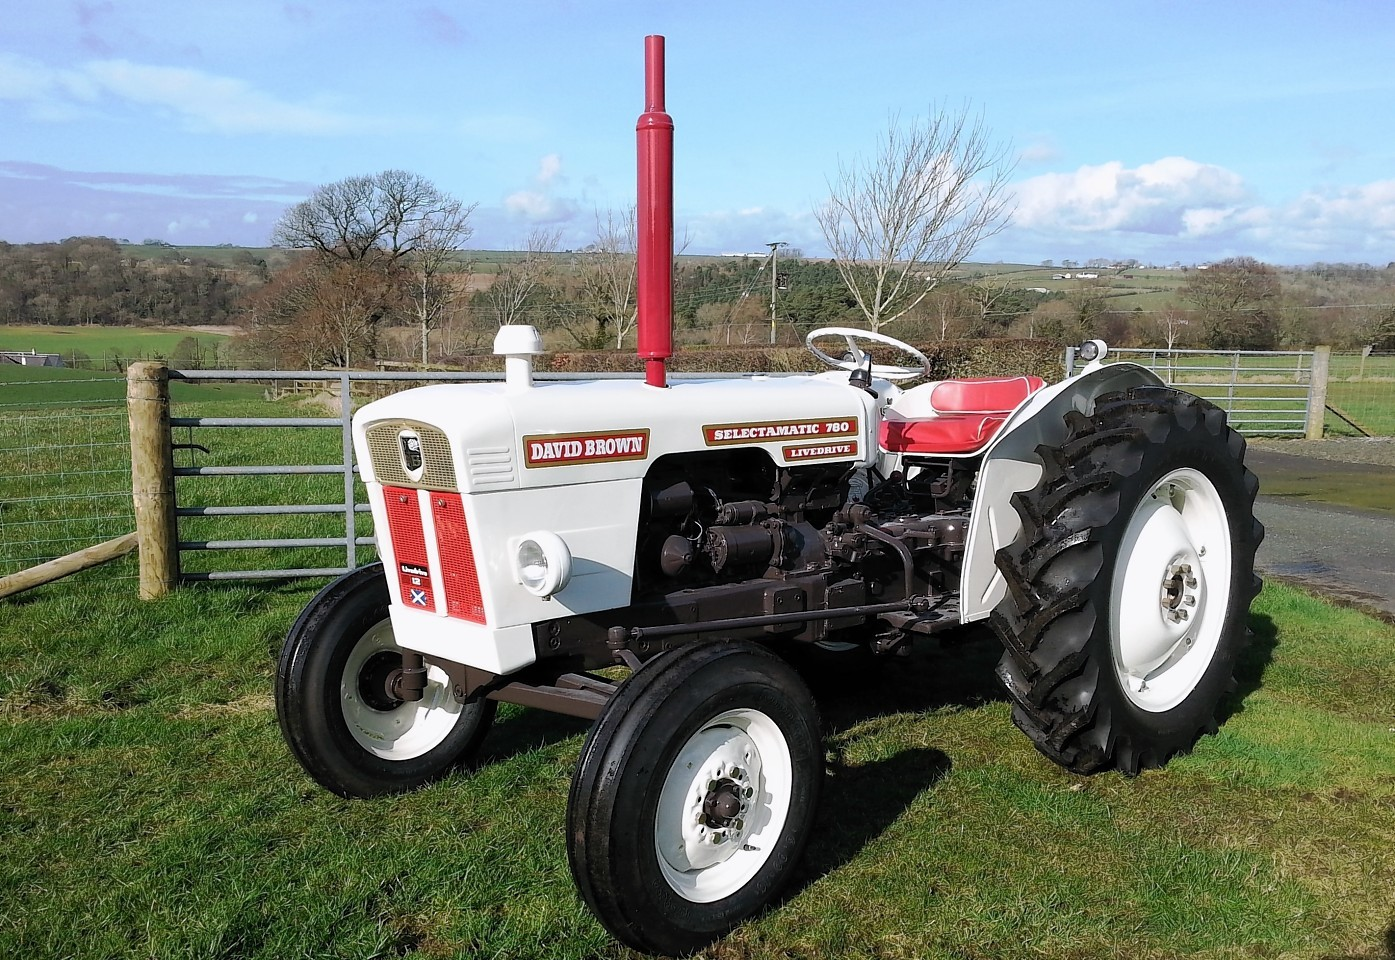 The 1971 David Baron 780 tractor being raffled by RSABI.